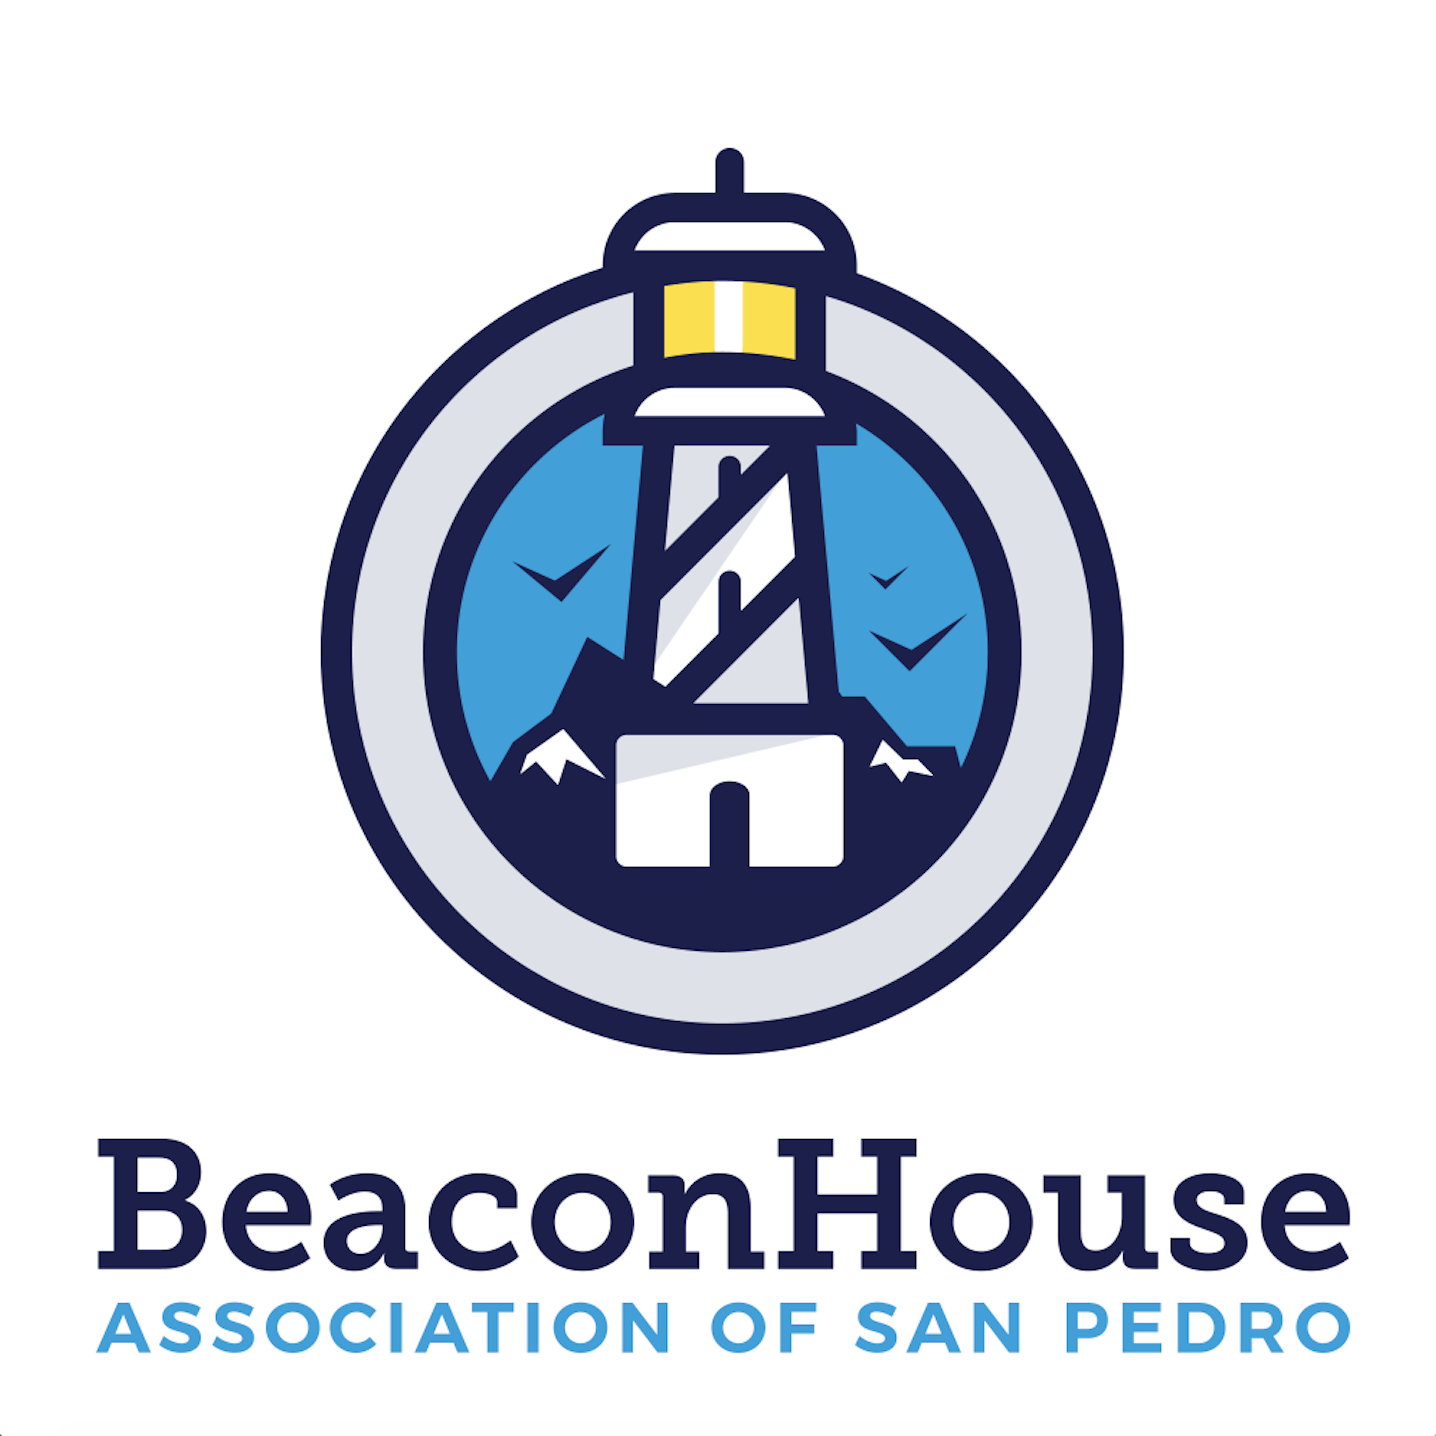 Food Network's Andrew Zimmern and Indianapolis's Jeremy Martindale, The Alexander Hotel, Join Southern California Chefs in 20CHEFS: A Social Distanced Fundraiser for The Beacon House of San Pedro